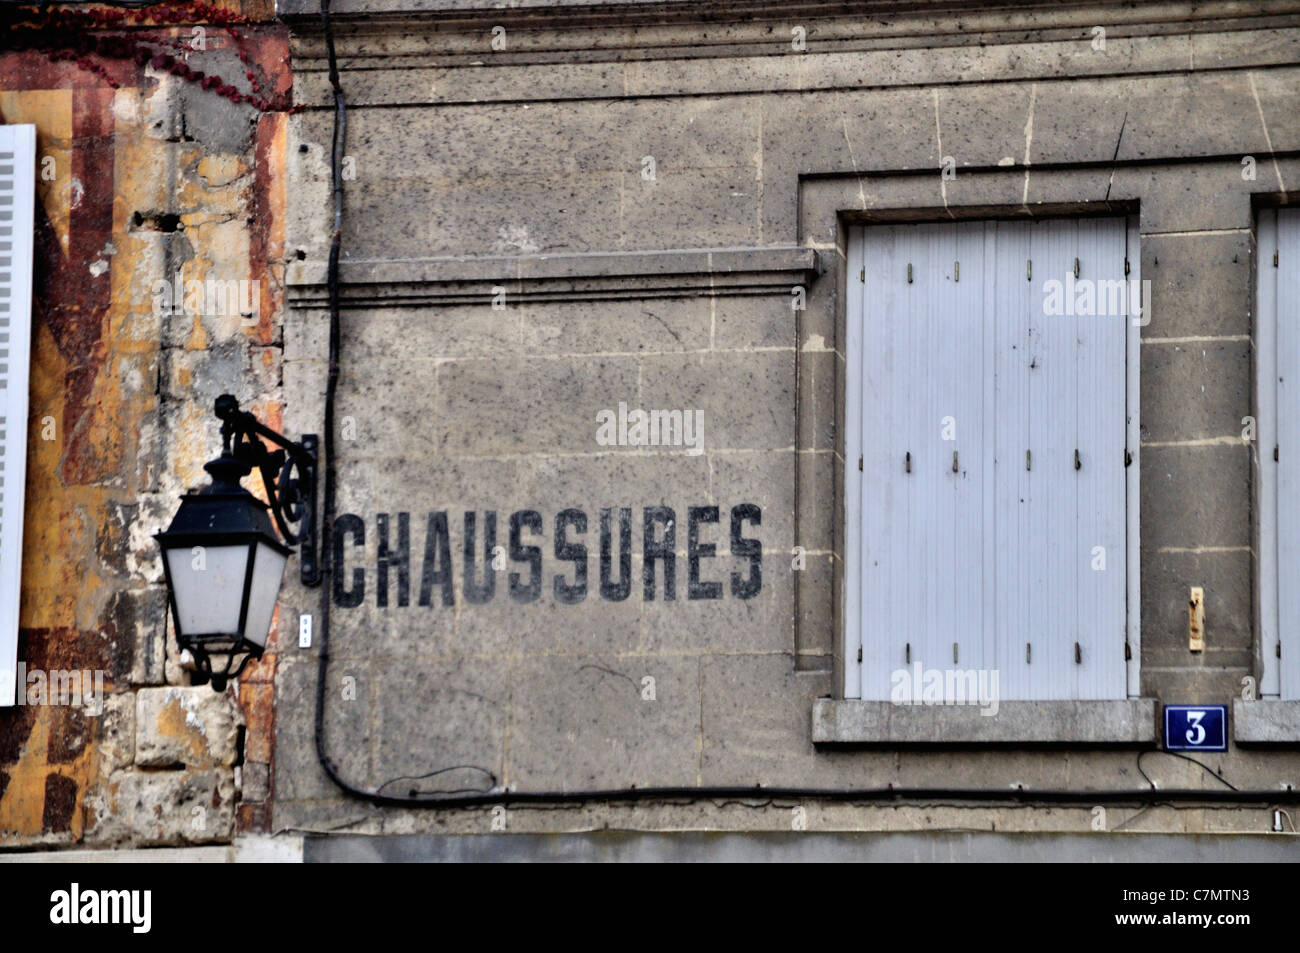 Outside old shop FRANCE CHAUSSURES sign at Vic-Sur-Aisne Berny-Rivière France - Stock Image